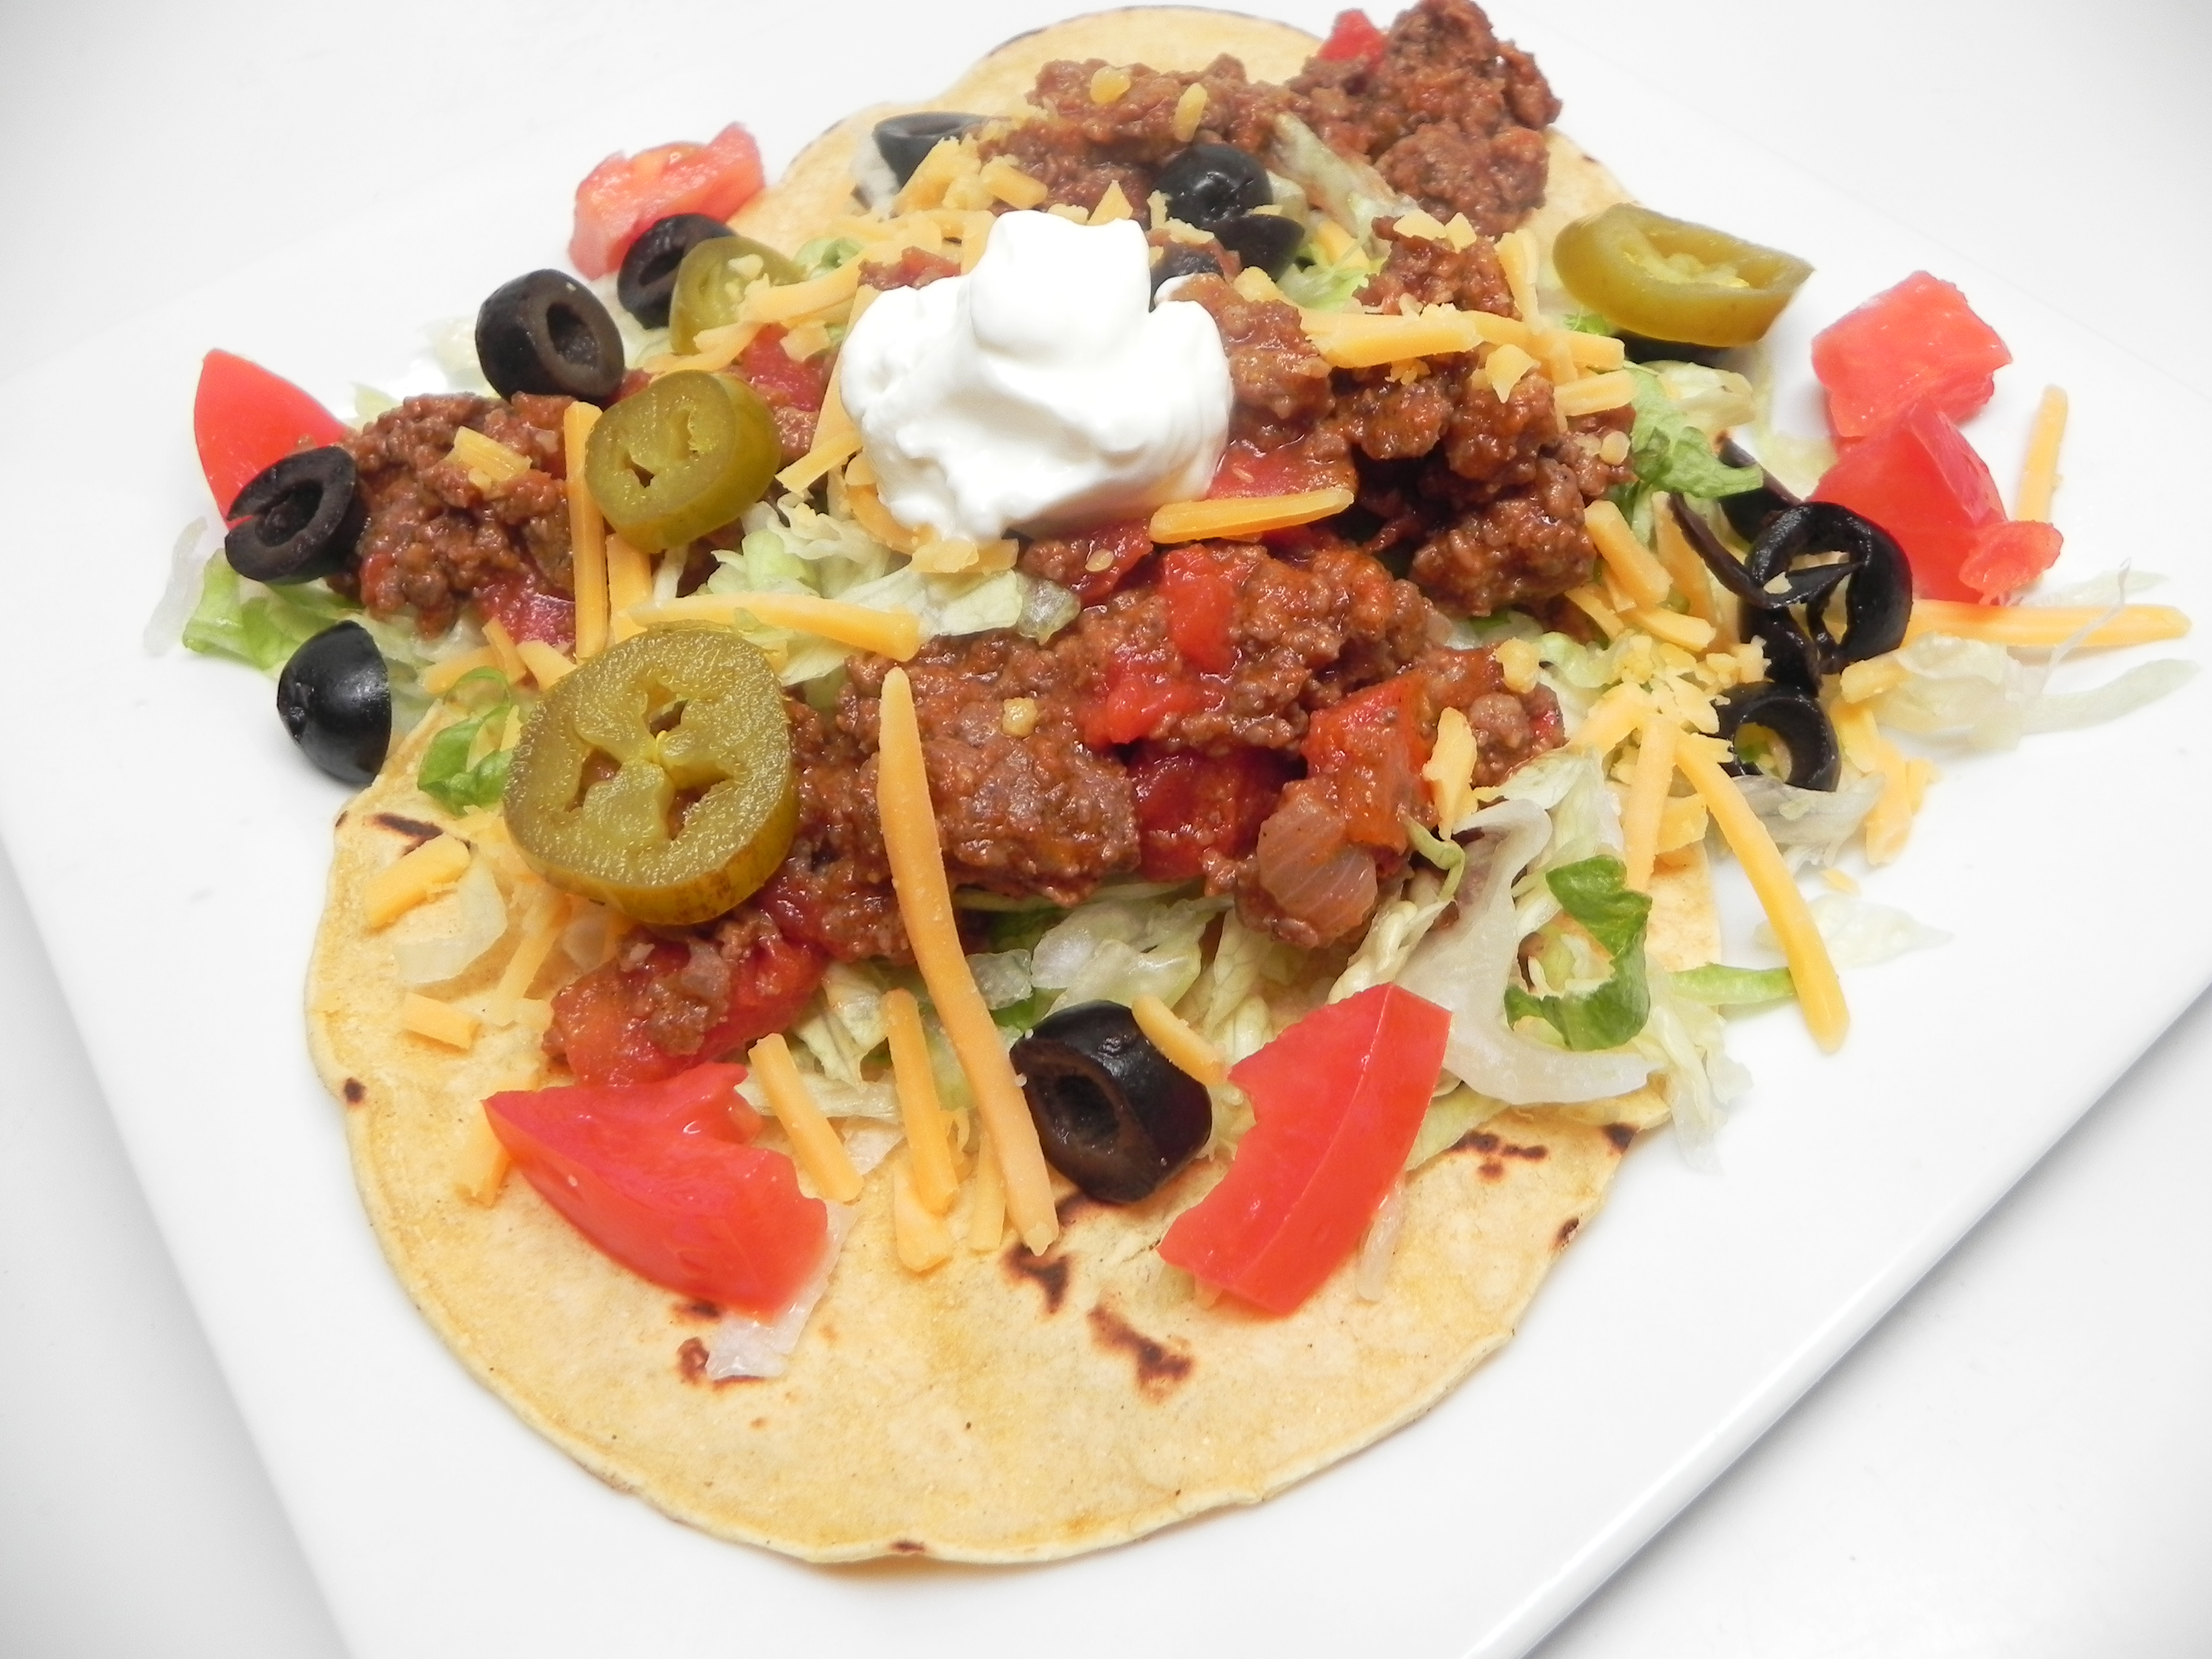 """""""This is a quick and simple recipe for delicious tacos made with ground beef and pork sausage, which gives the traditional recipe a nice twist,"""" says ANG03. """"Although they can be messy, they are so good, and perfect for busy weeknights. Try using the leftovers for nachos to mix it up a bit. Serve with your favorite taco toppings."""""""